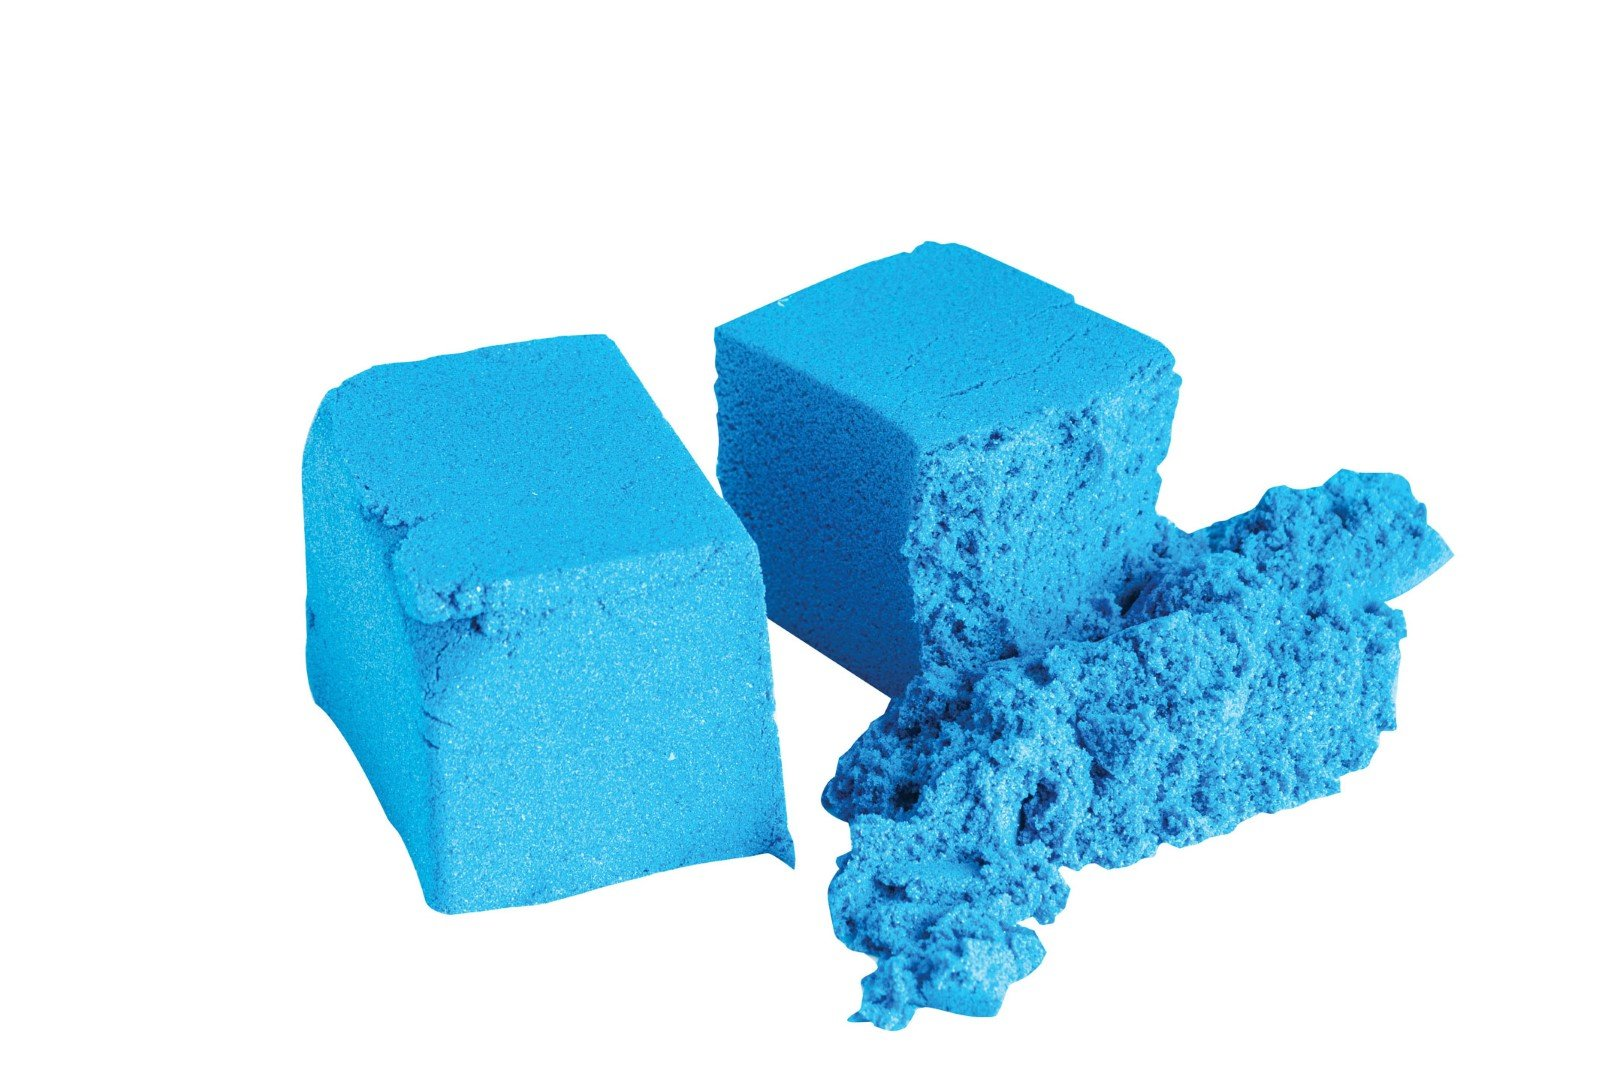 71672STW-Prof.-Pengelly's-Sand-Ocean-Blue-Cube-Lifestyle-A (Large)